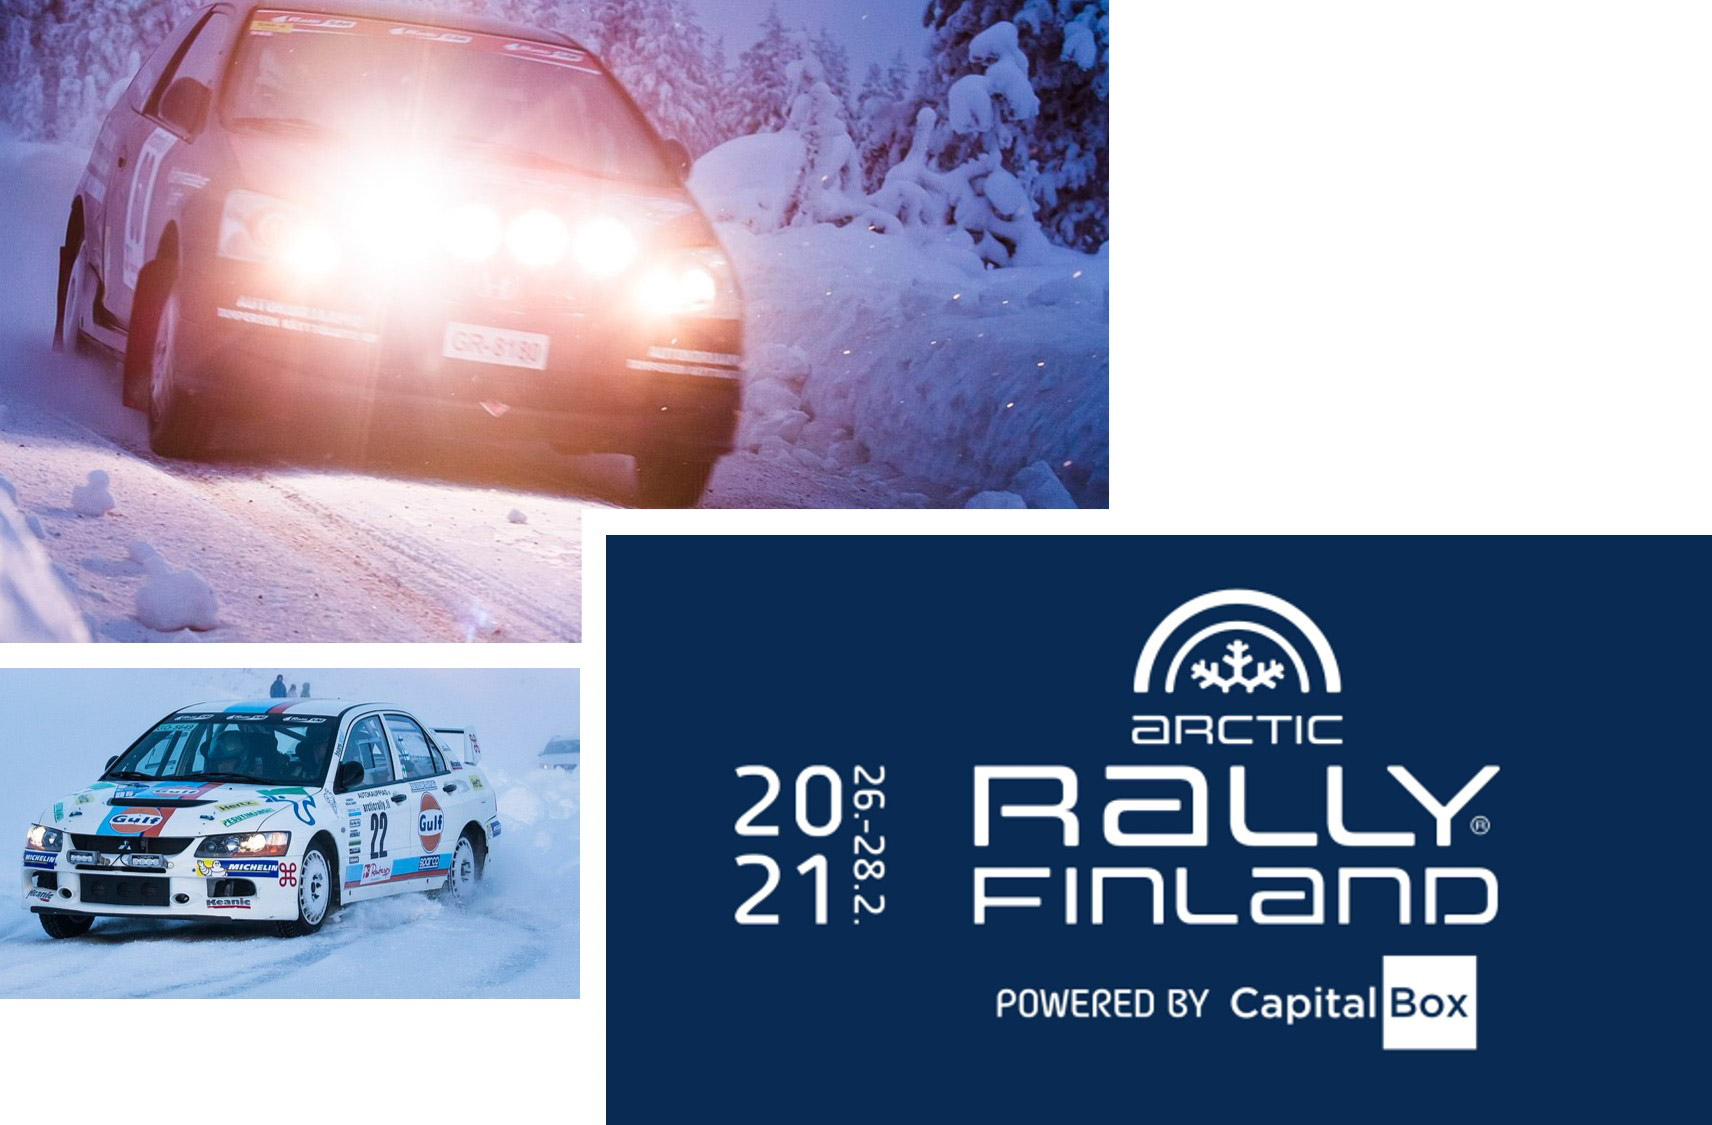 Arctic Rally Finland Visit Rovaniemi First ever Arctic Rally Finland Powered by CapitalBox in Rovaniemi 2021